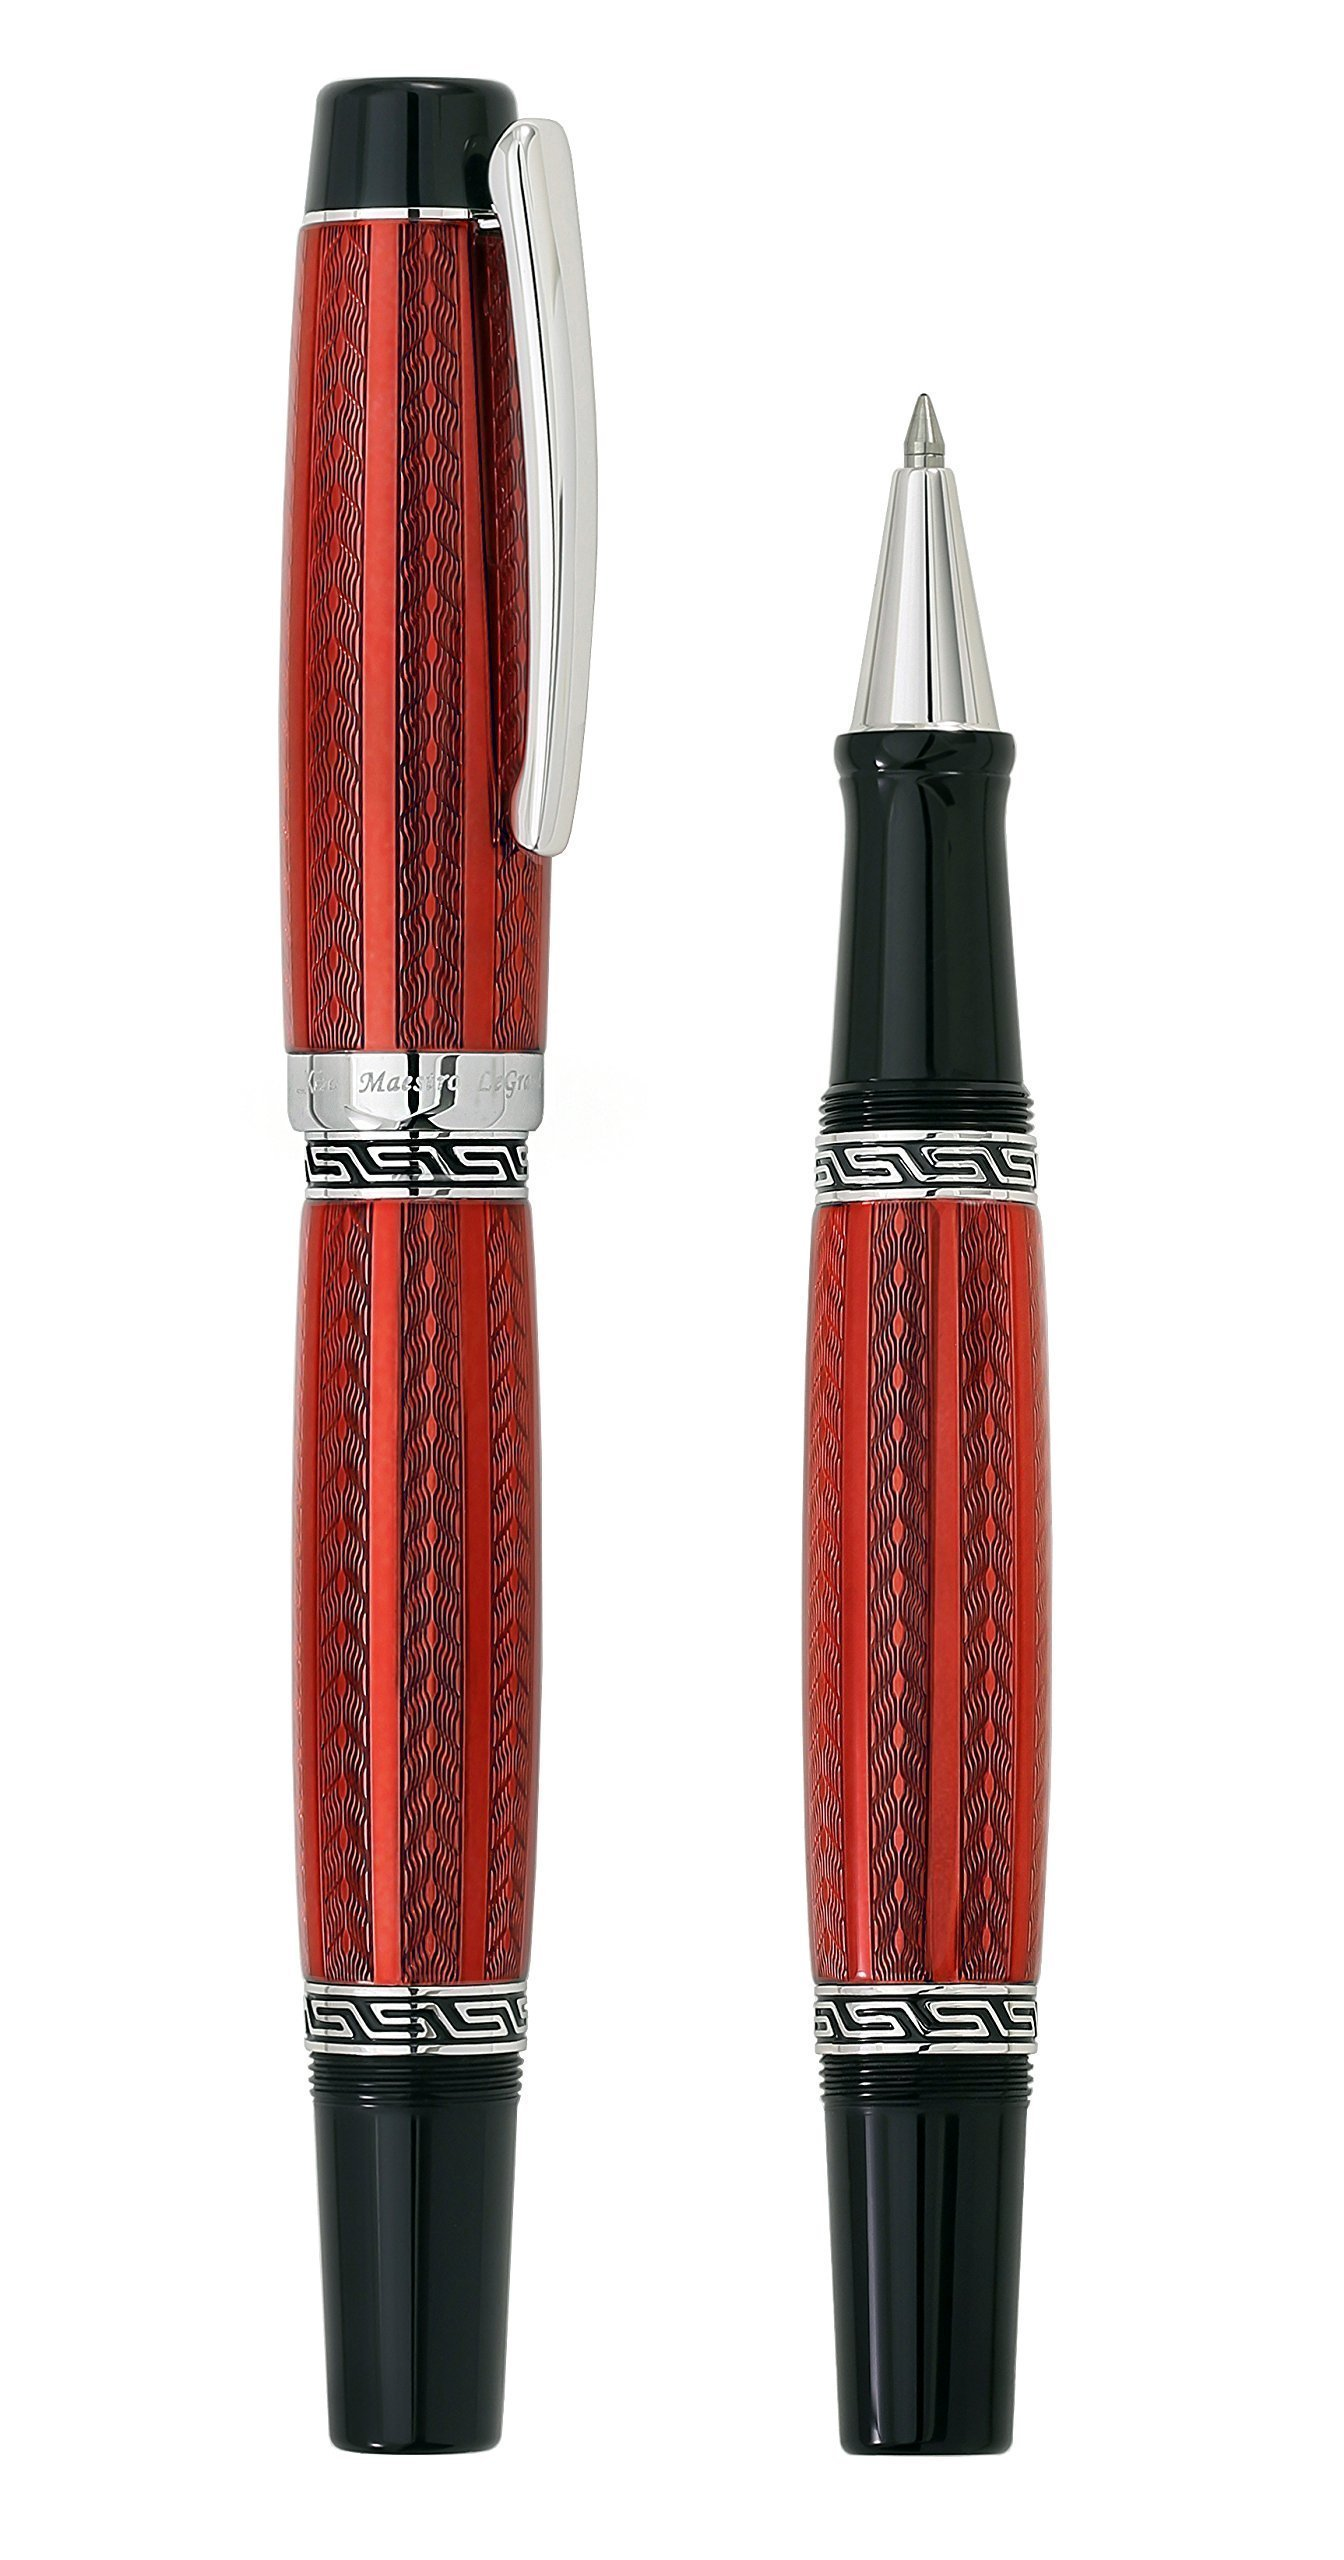 Xezo Maestro LeGrand Diamond Cut, Lacquered, Platinum Plated Fine Rollerball Pen in Rhodochrosite Color